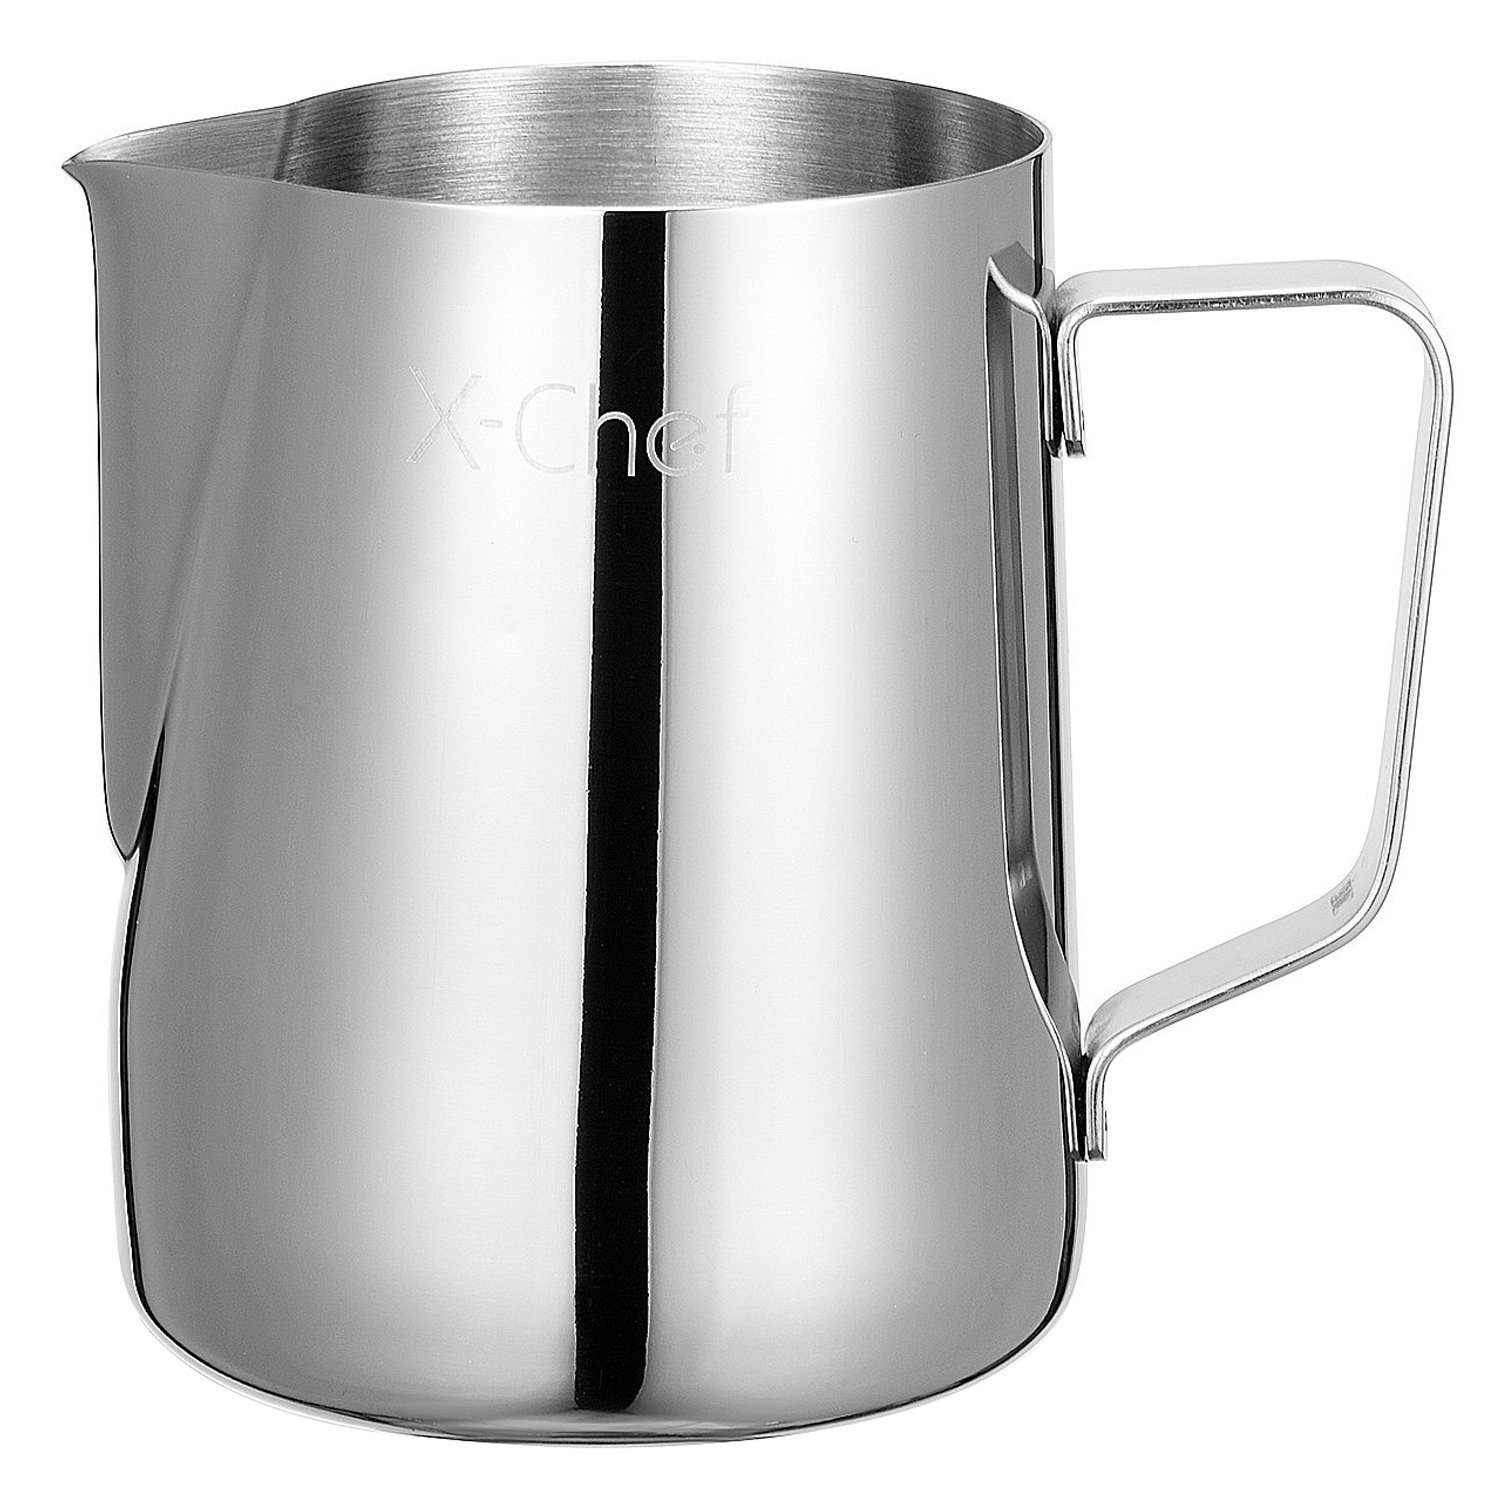 milk frothing jug mloz xchef stainless steel milk pitcher  - milk frothing jug mloz xchef stainless steel milk pitcher perfectfor making coffee latte  cappuccino  dish washer safe amazoncoukkitchen